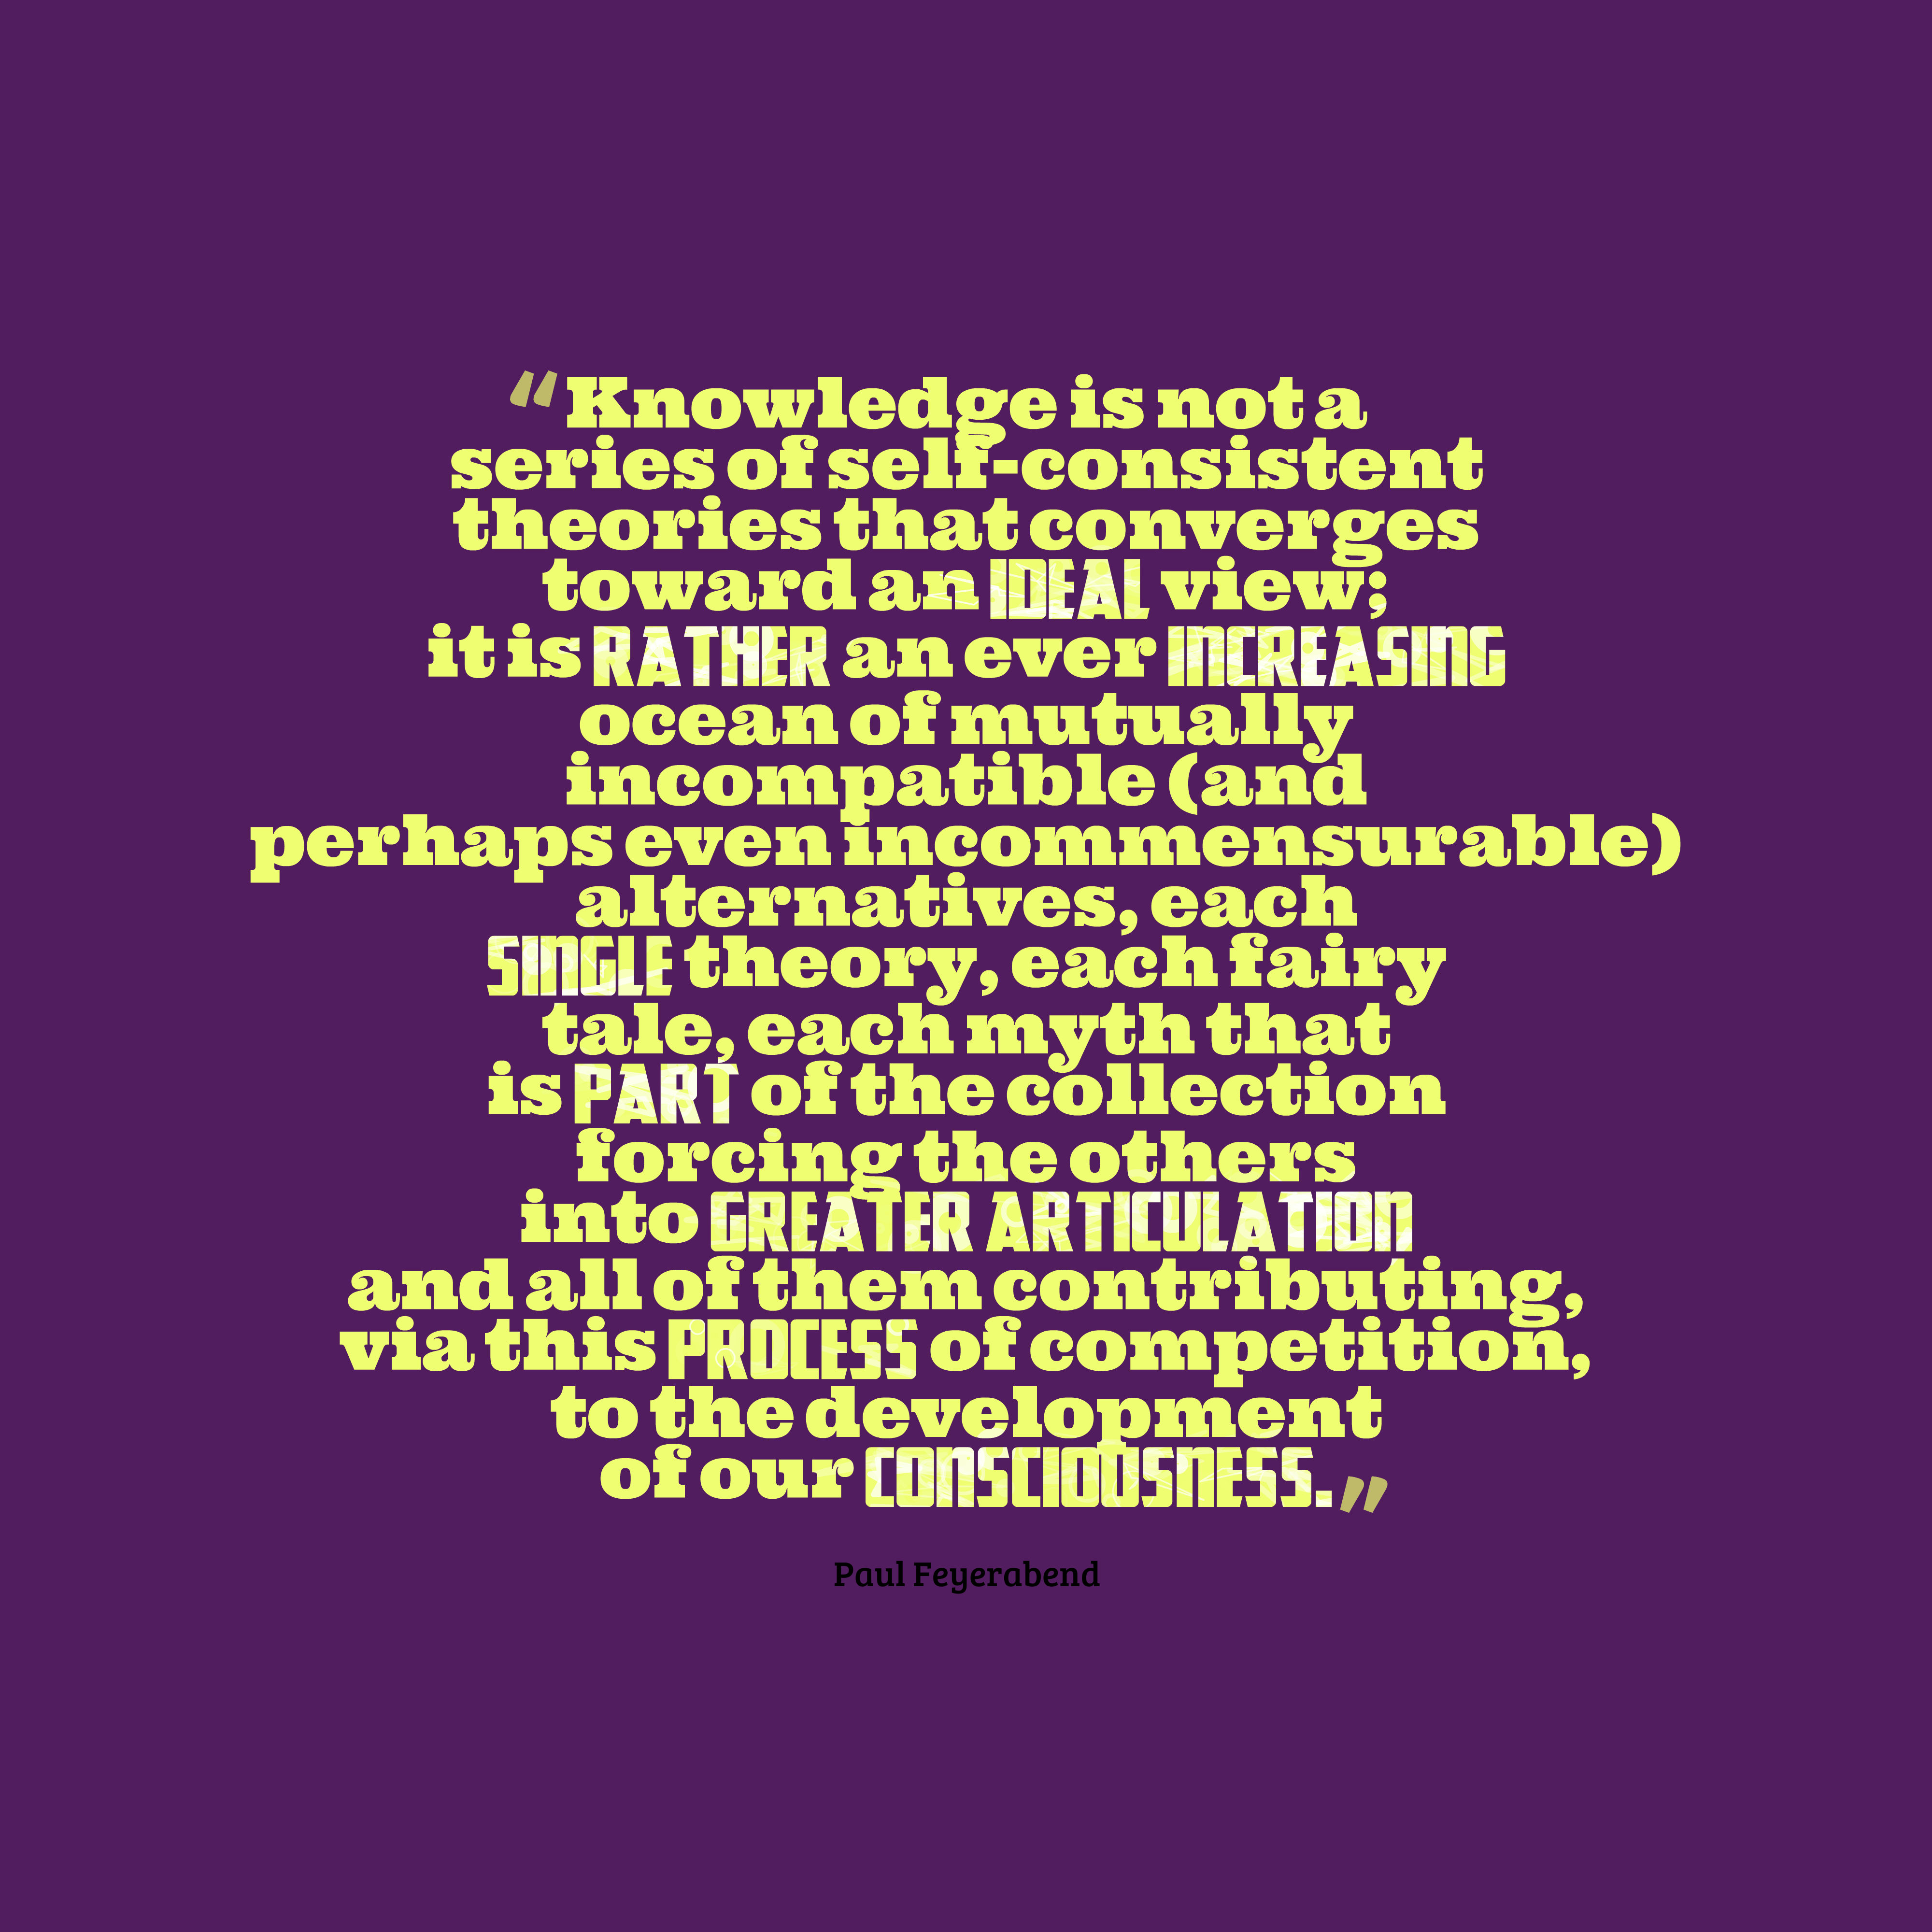 Quotes image of Knowledge is not a series of self-consistent theories that converges toward an ideal view; it is rather an ever increasing ocean of mutually incompatible (and perhaps even incommensurable) alternatives, each single theory, each fairy tale, each myth that is part of the collection forcing the others into greater articulation and all of them contributing, via this process of competition, to the development of our consciousness.